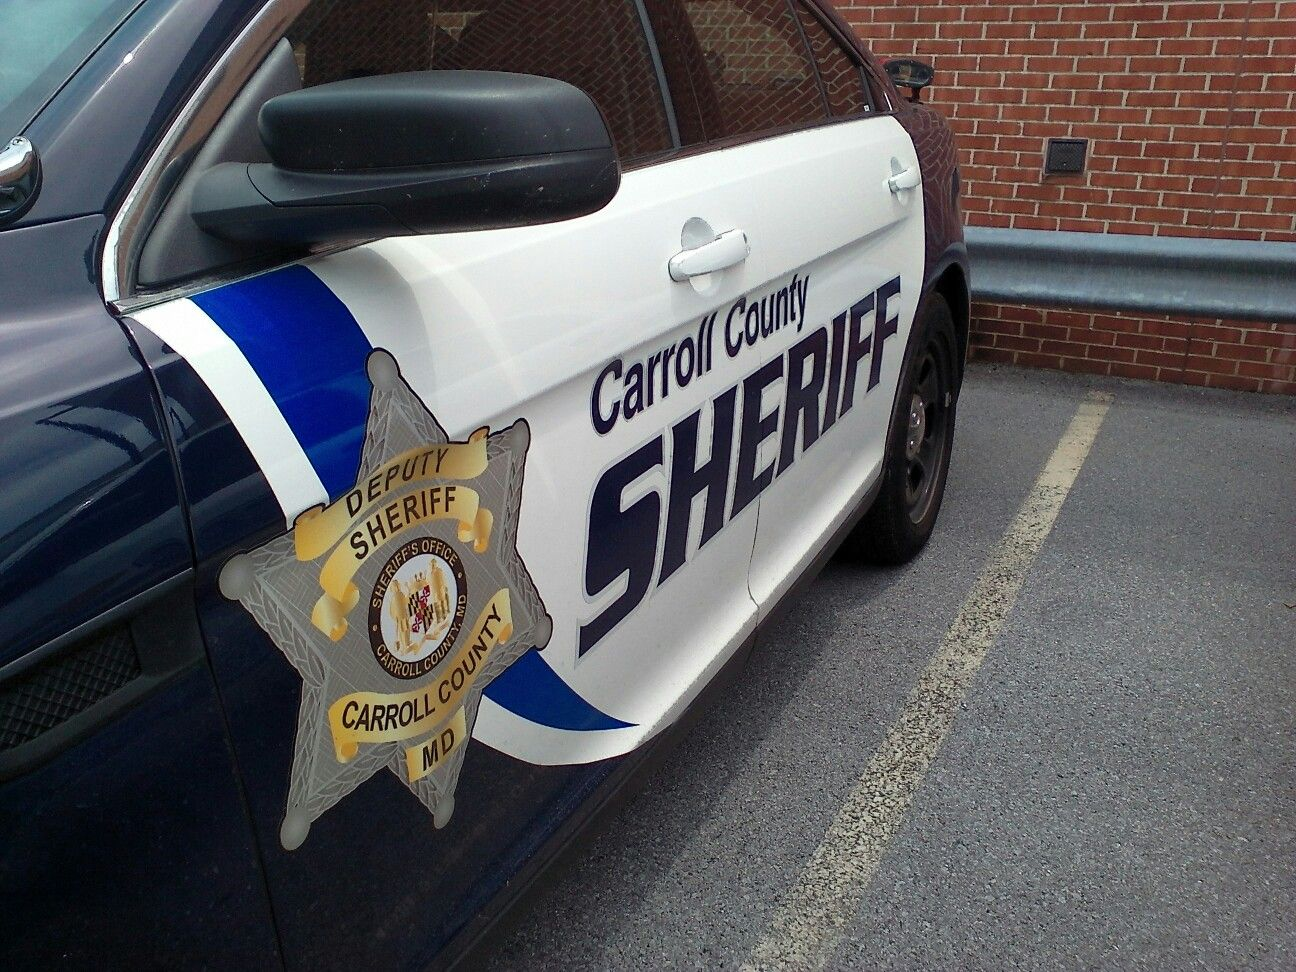 Carroll County Sheriff New Ford Taurus Carroll County Carroll